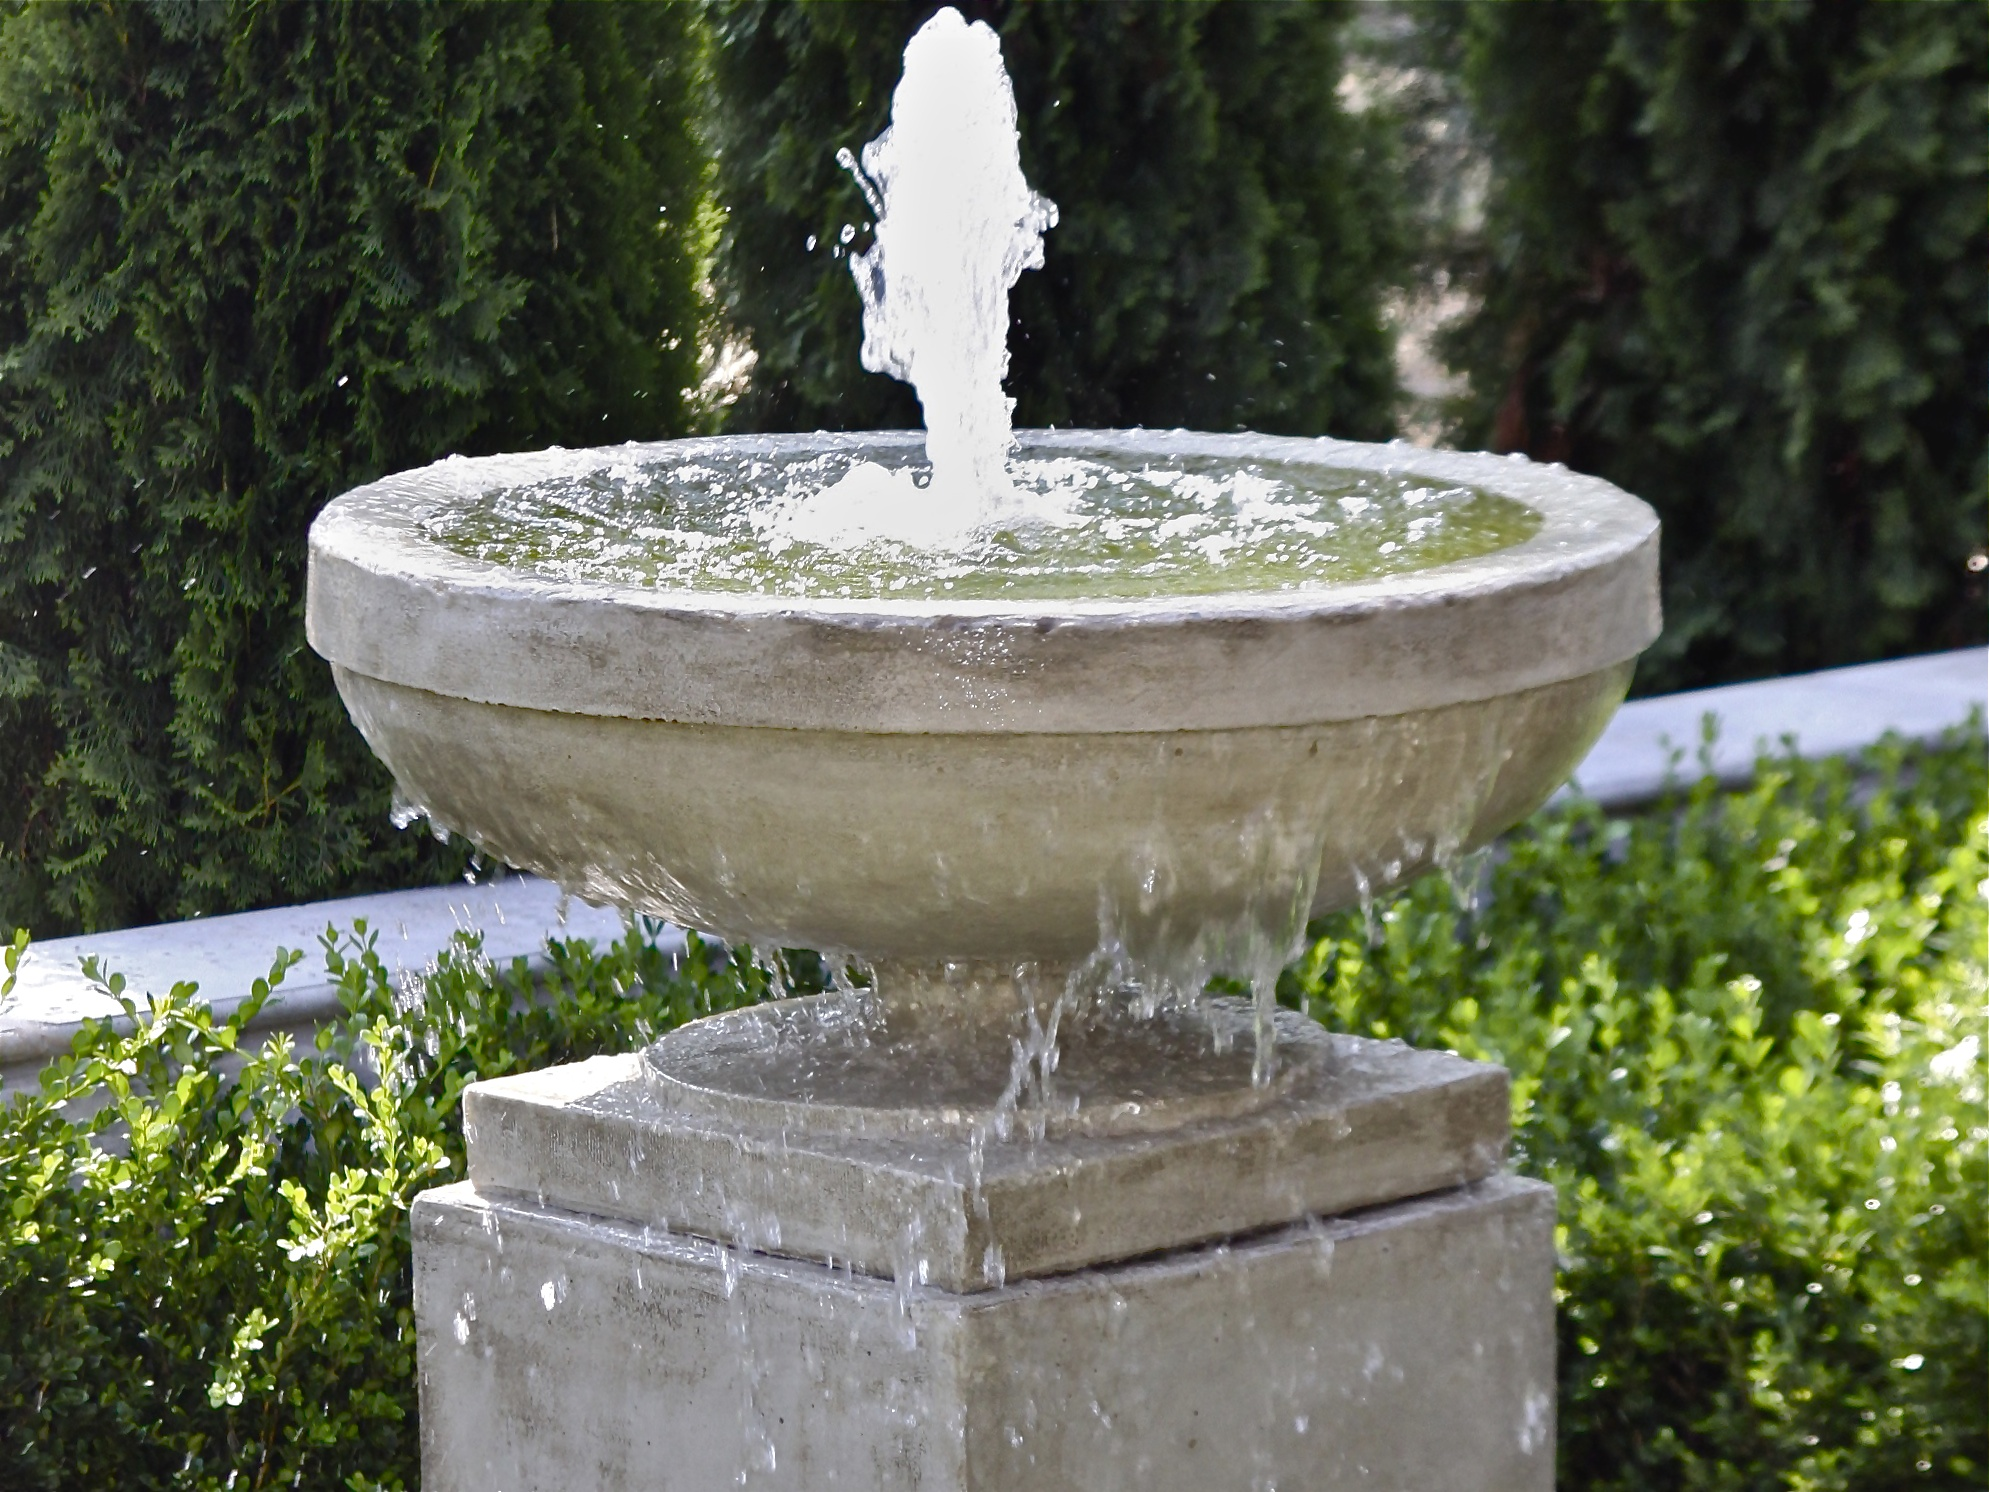 Architectural Fountains, Floating Fountains, and Water Walls